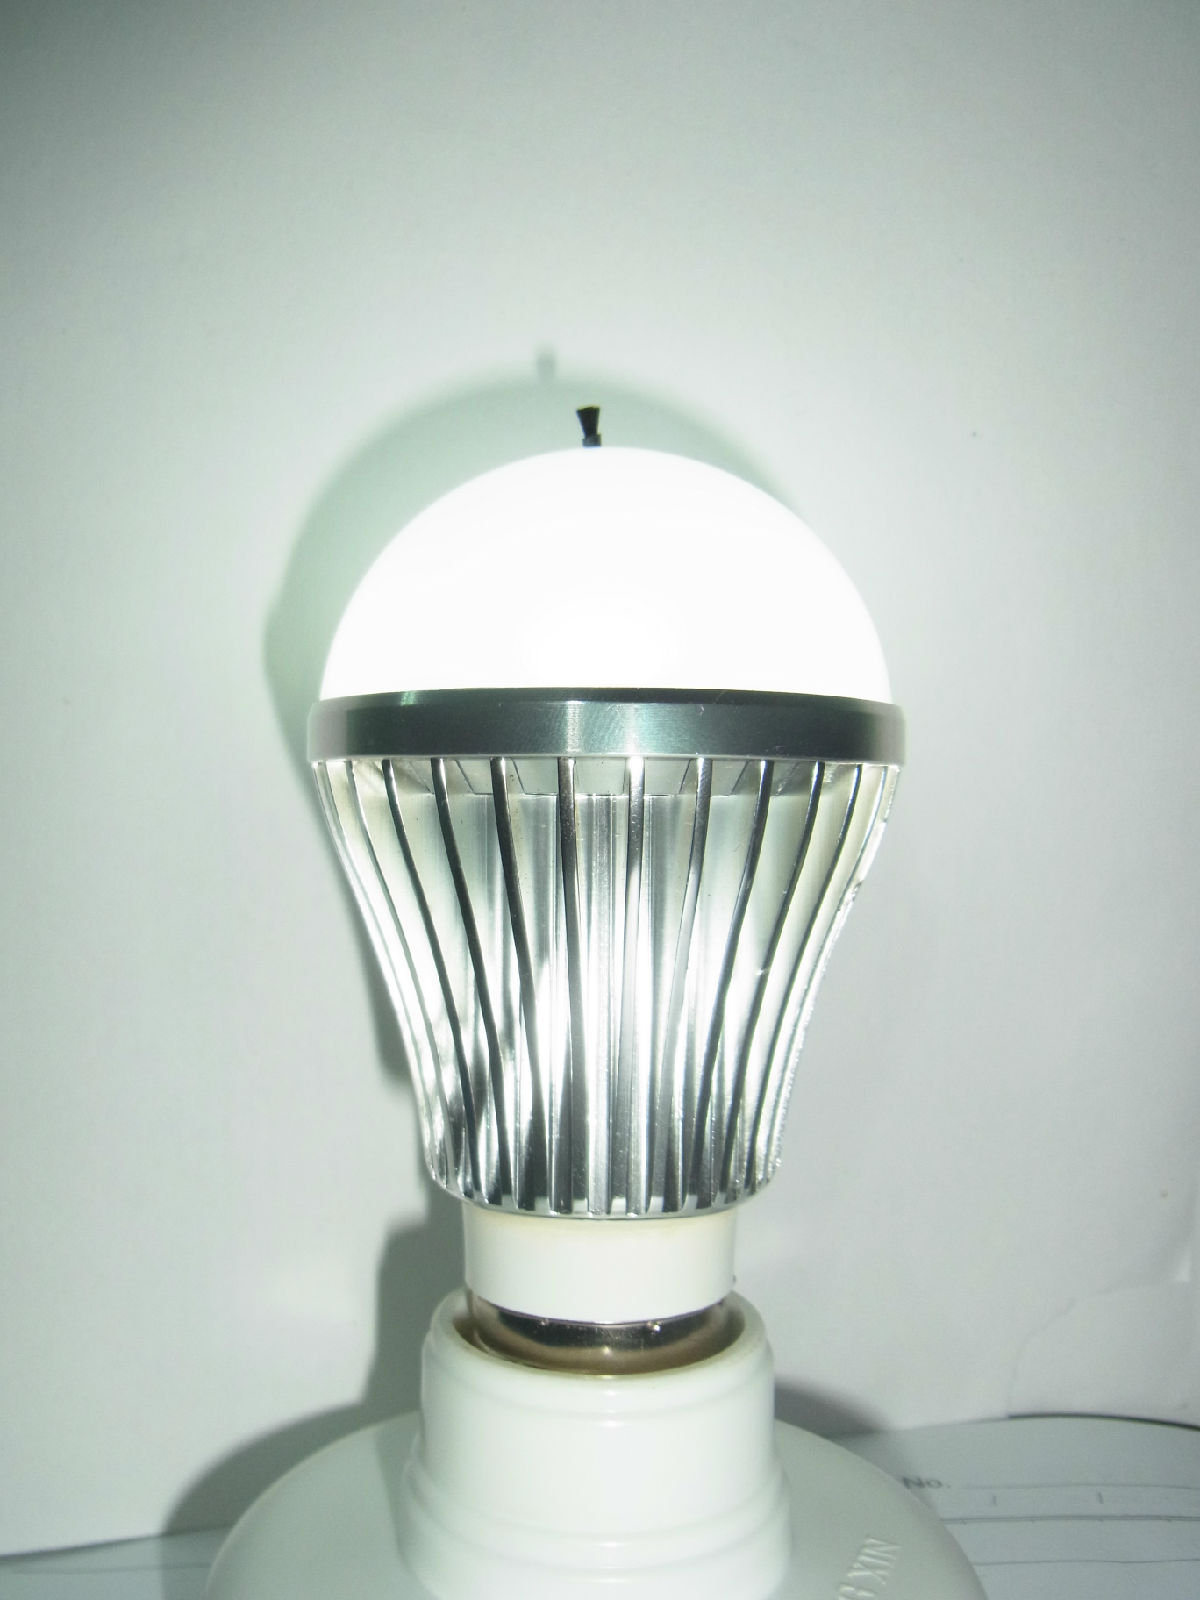 Purify Ion Led Air Negative Best Bulb Selling Innovative N8knXO0wP